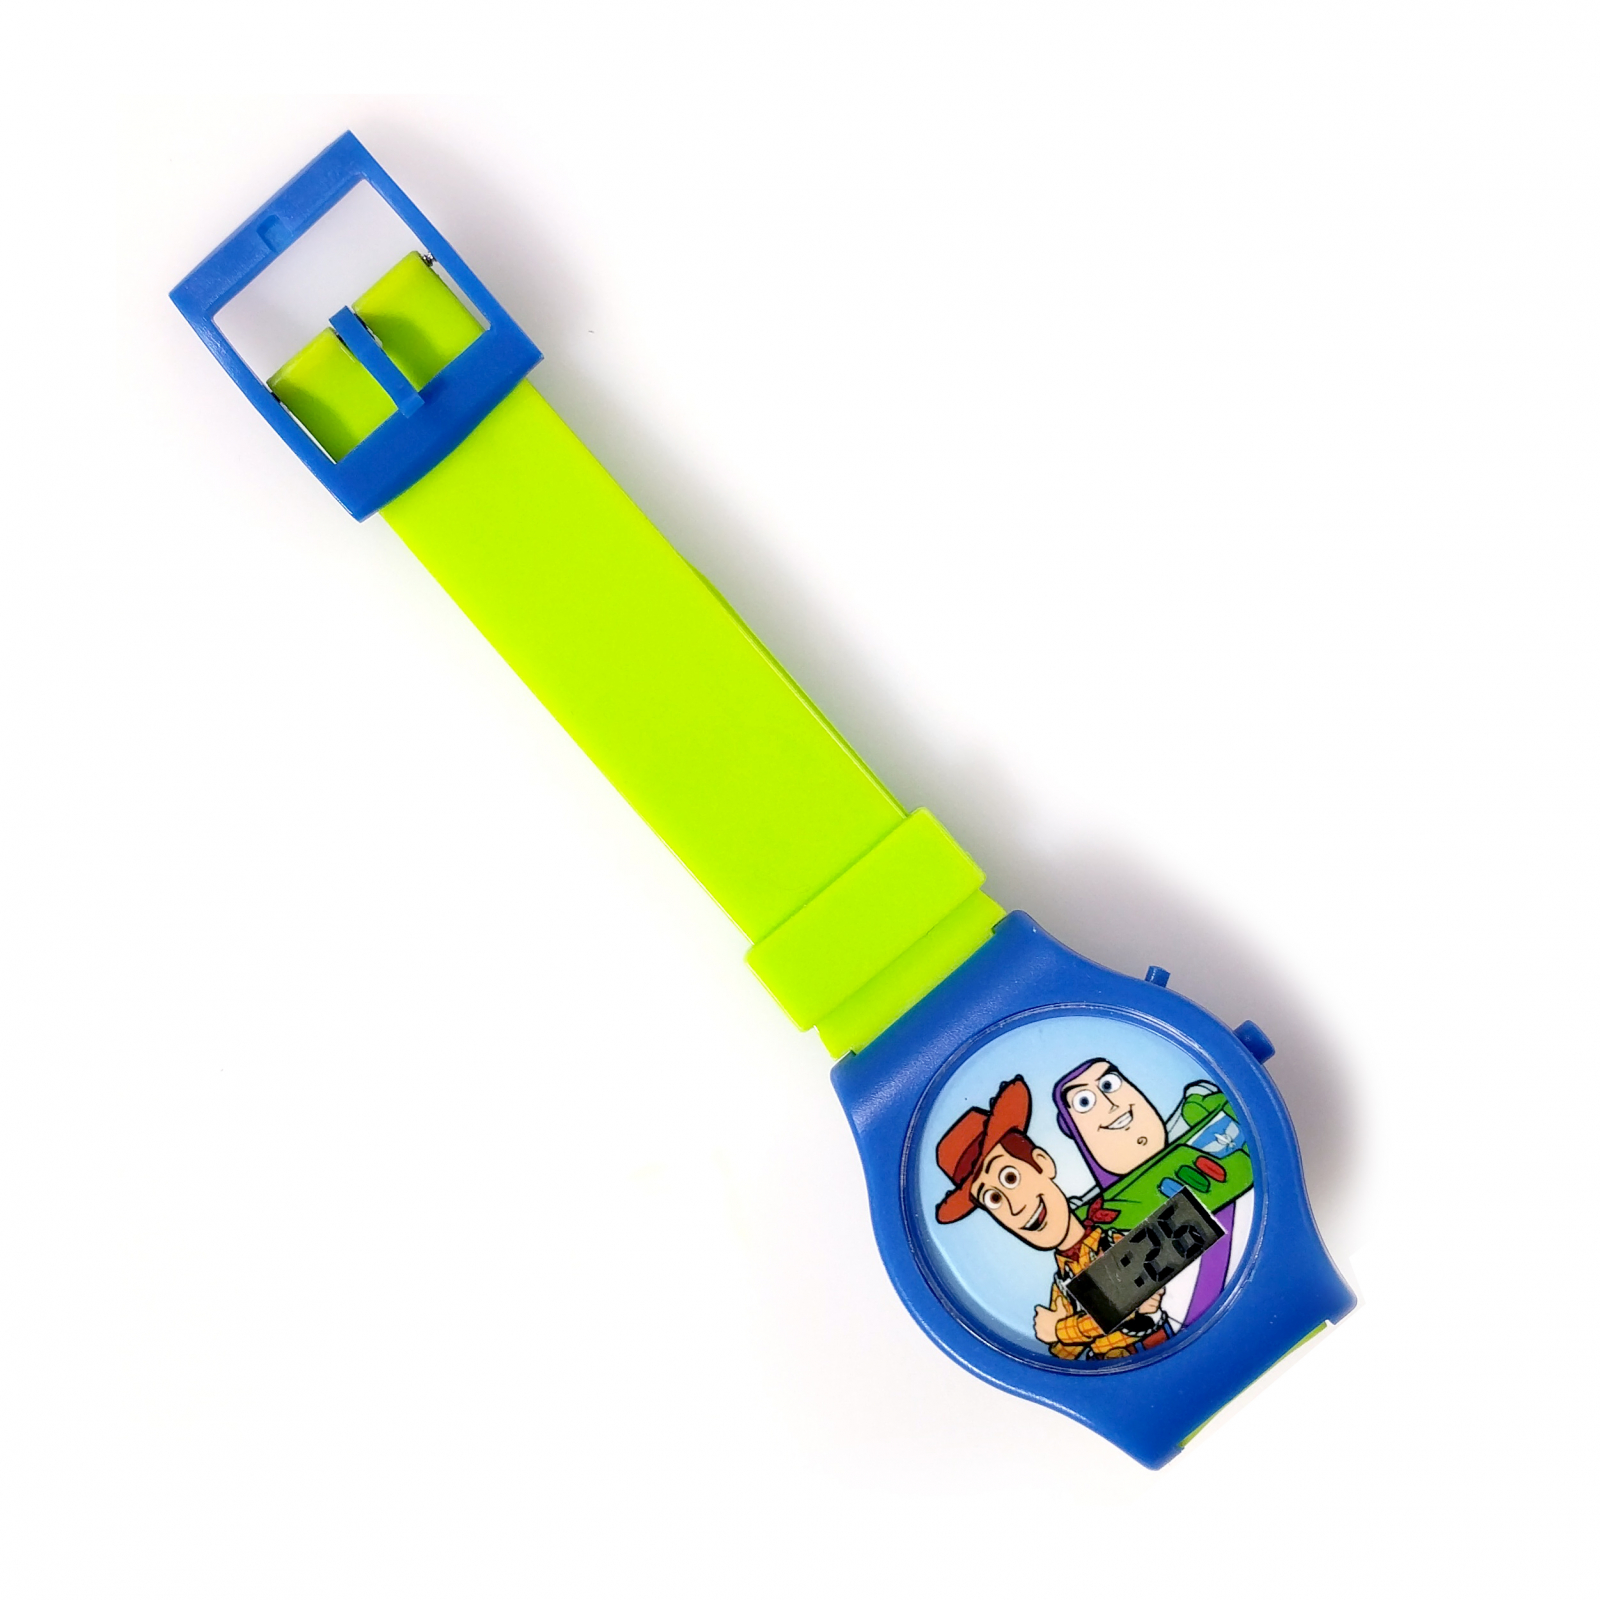 Disney Pixar Toy Story 4 LCD Digital Wrist Watch Timer Green